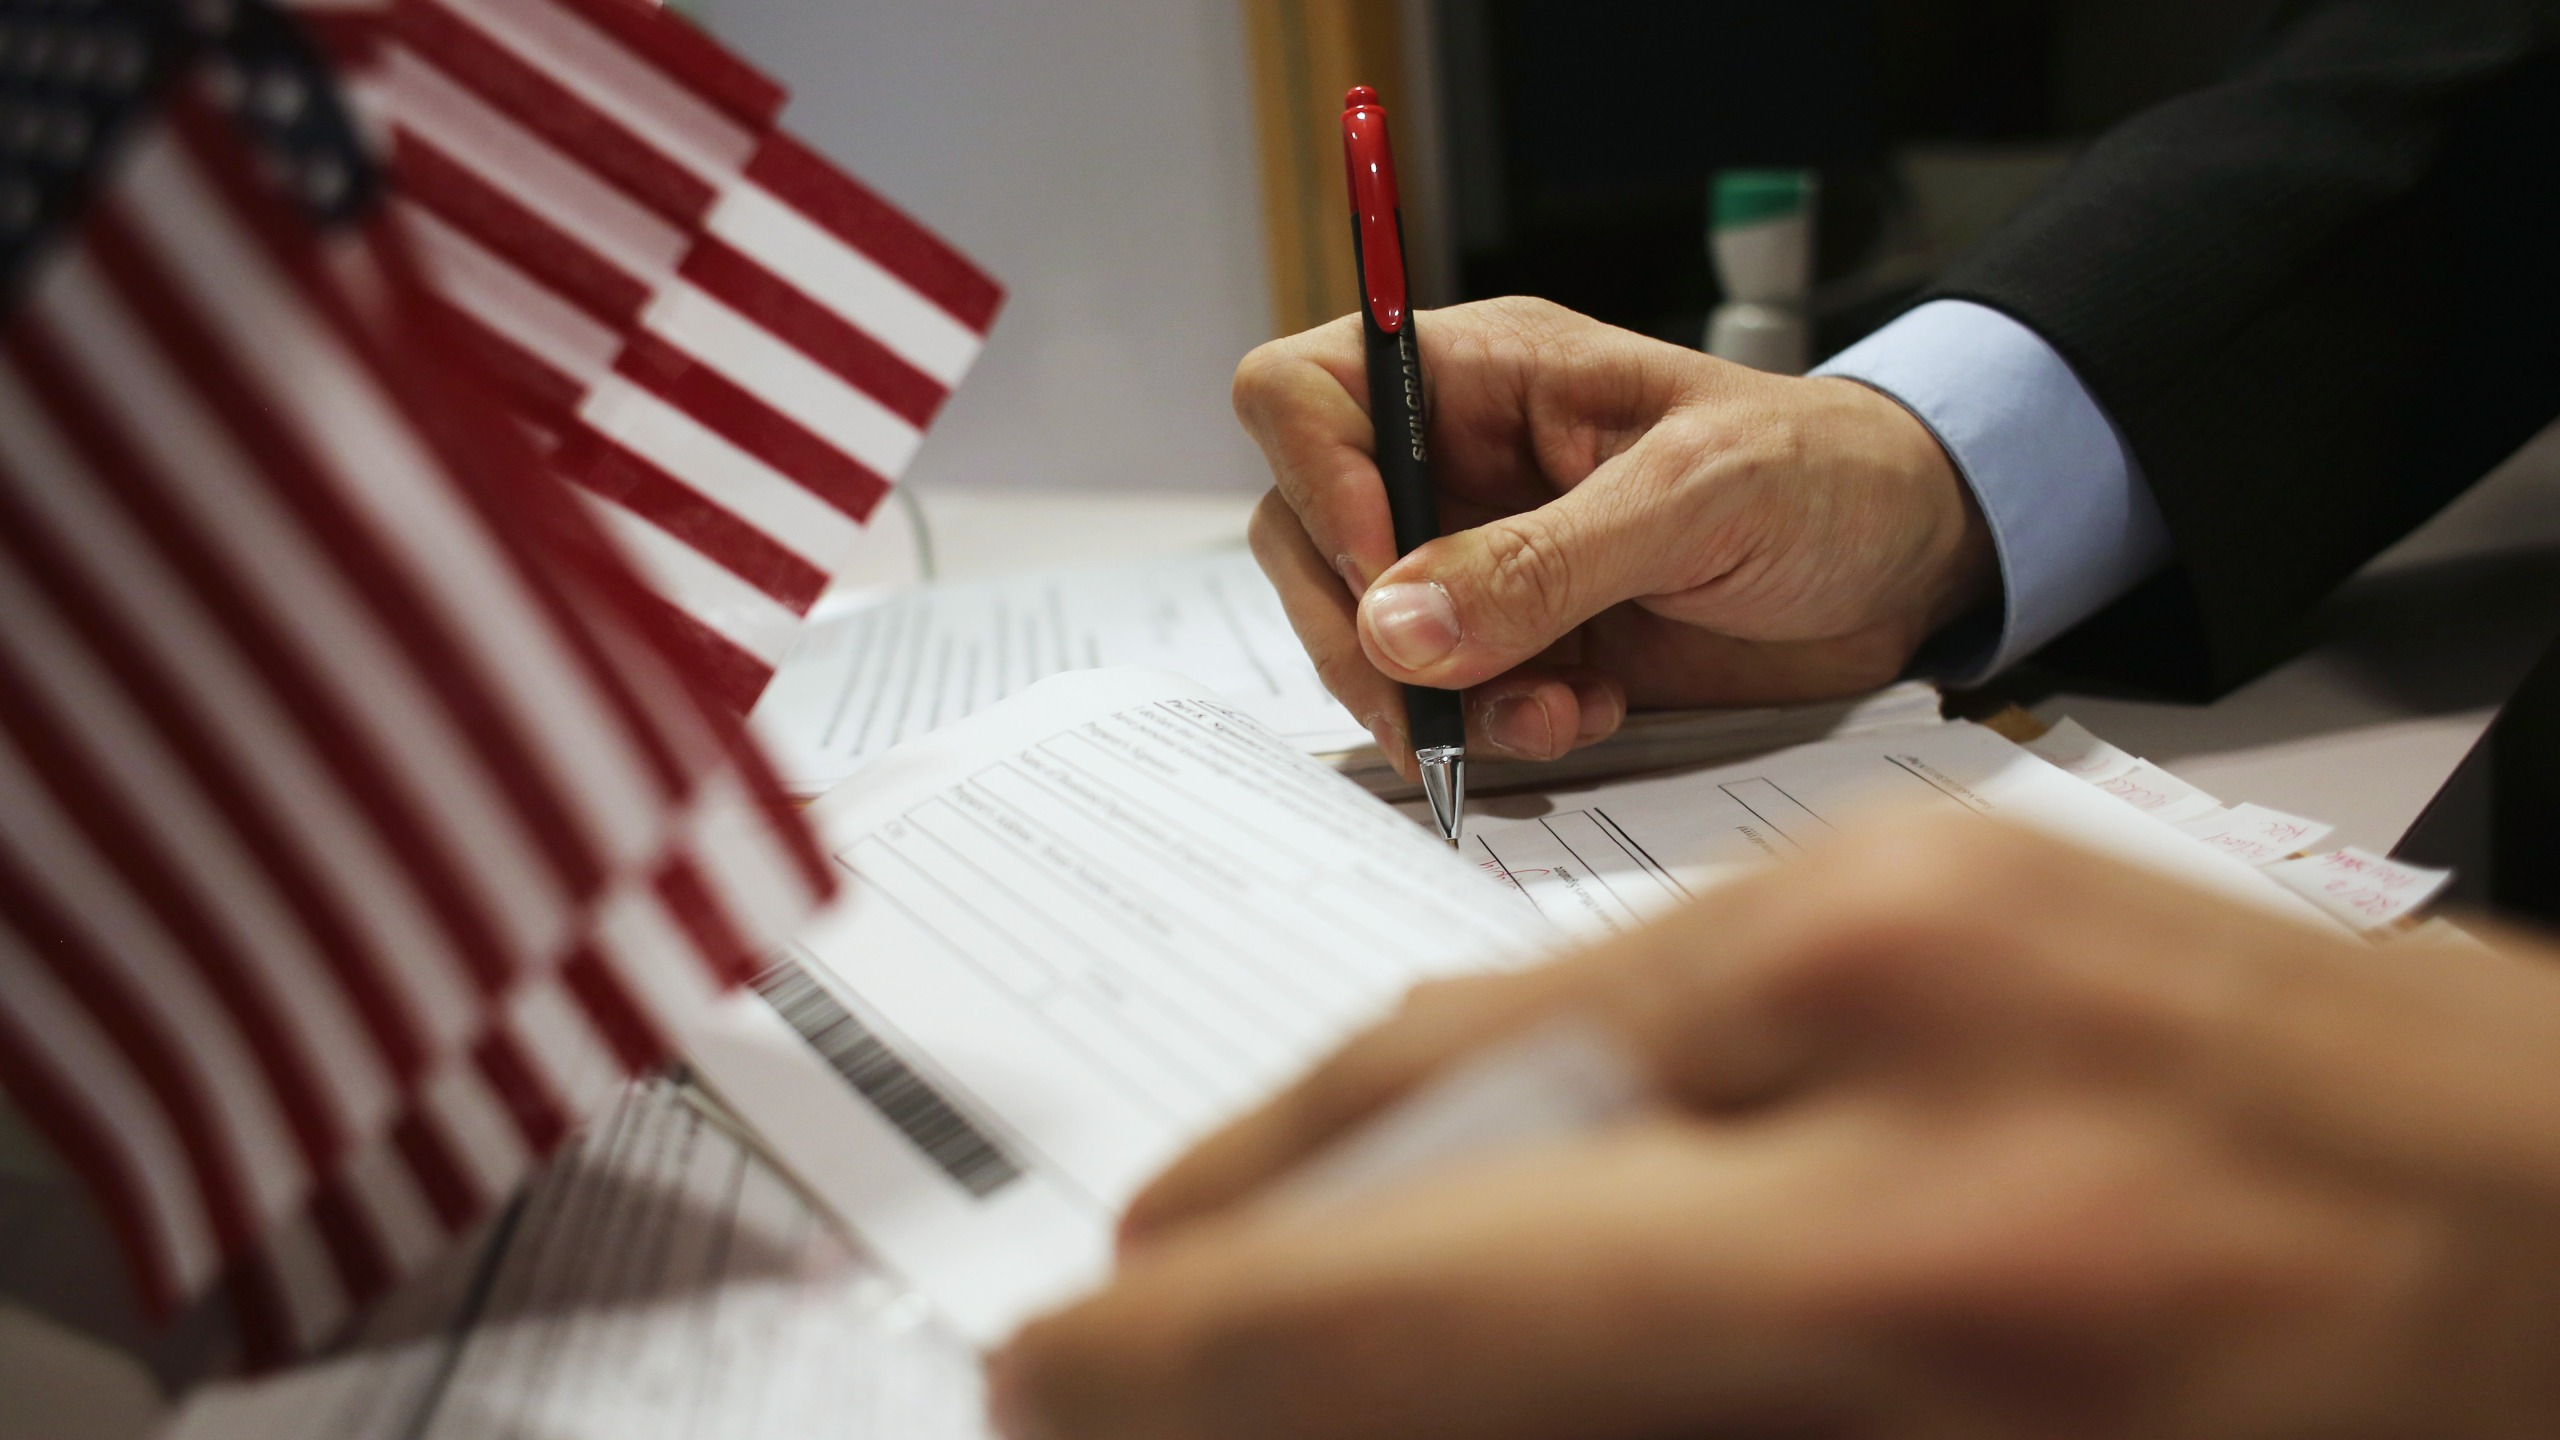 This file photo shows an official signing applications at the U.S. Citizenship and Immigration Services district office on Jan. 29, 2013, in New York City. (John Moore/Getty Images)